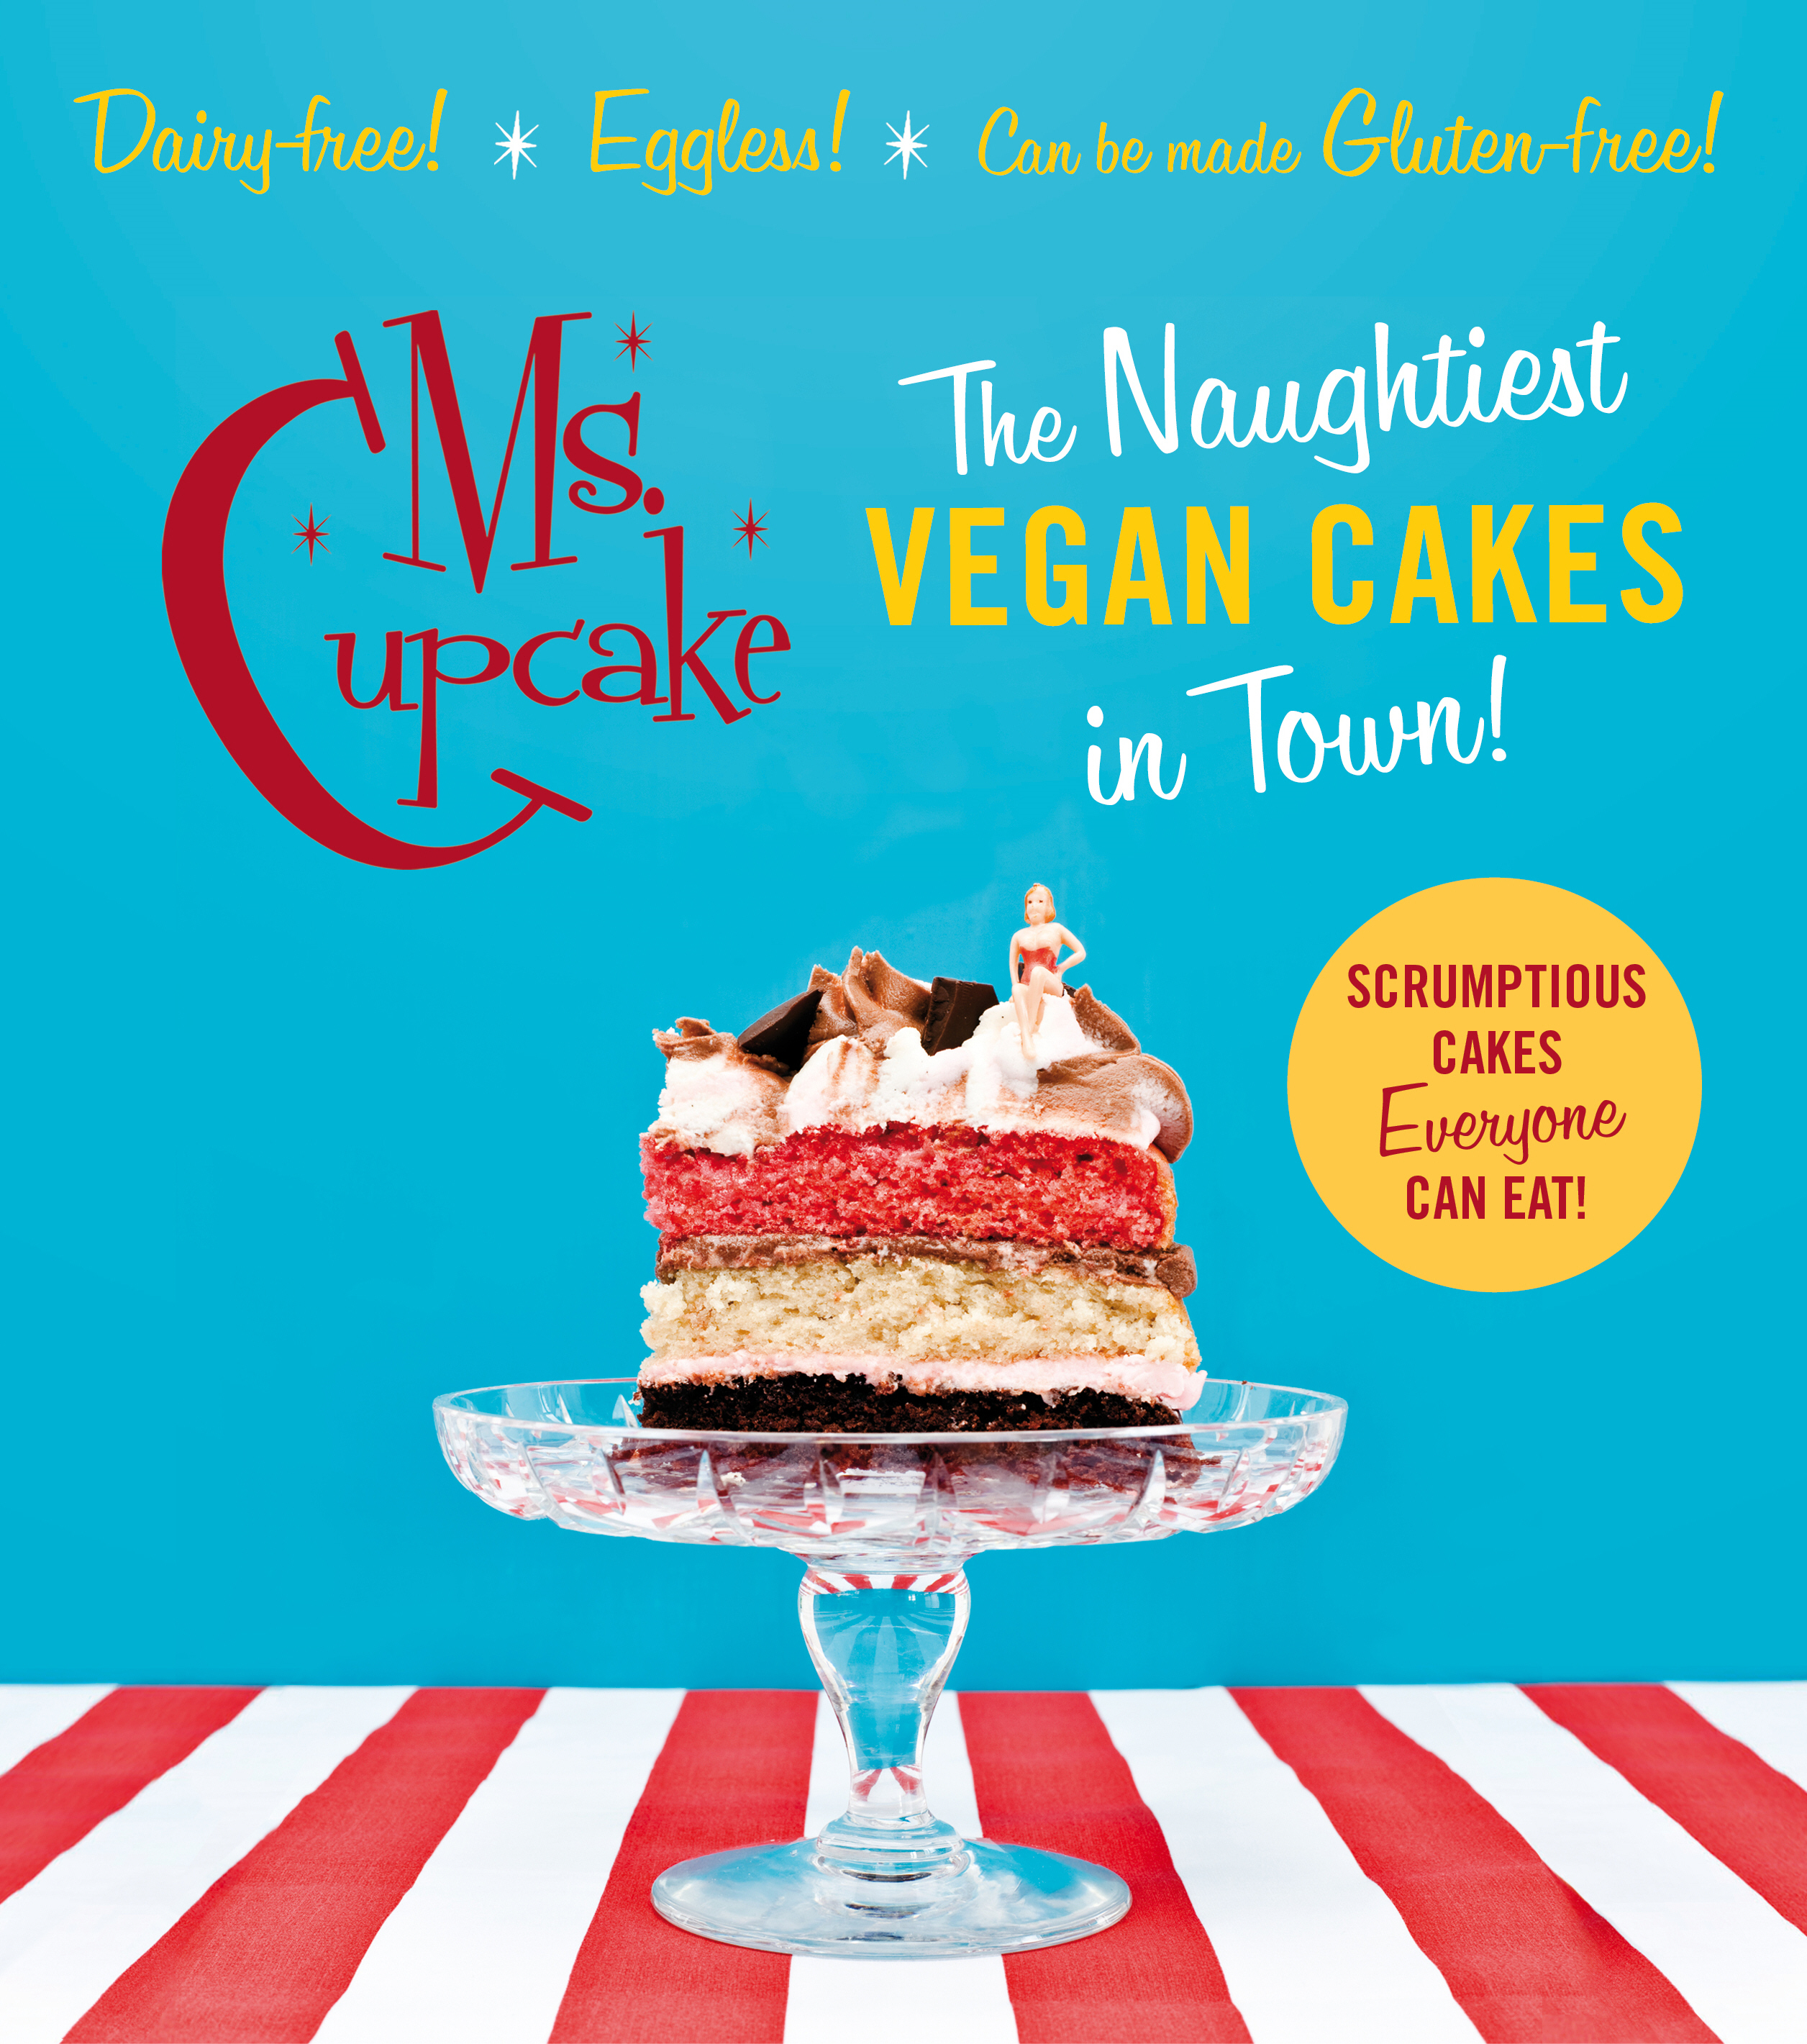 Ms Cupcake The Naughtiest Vegan Cakes in Town